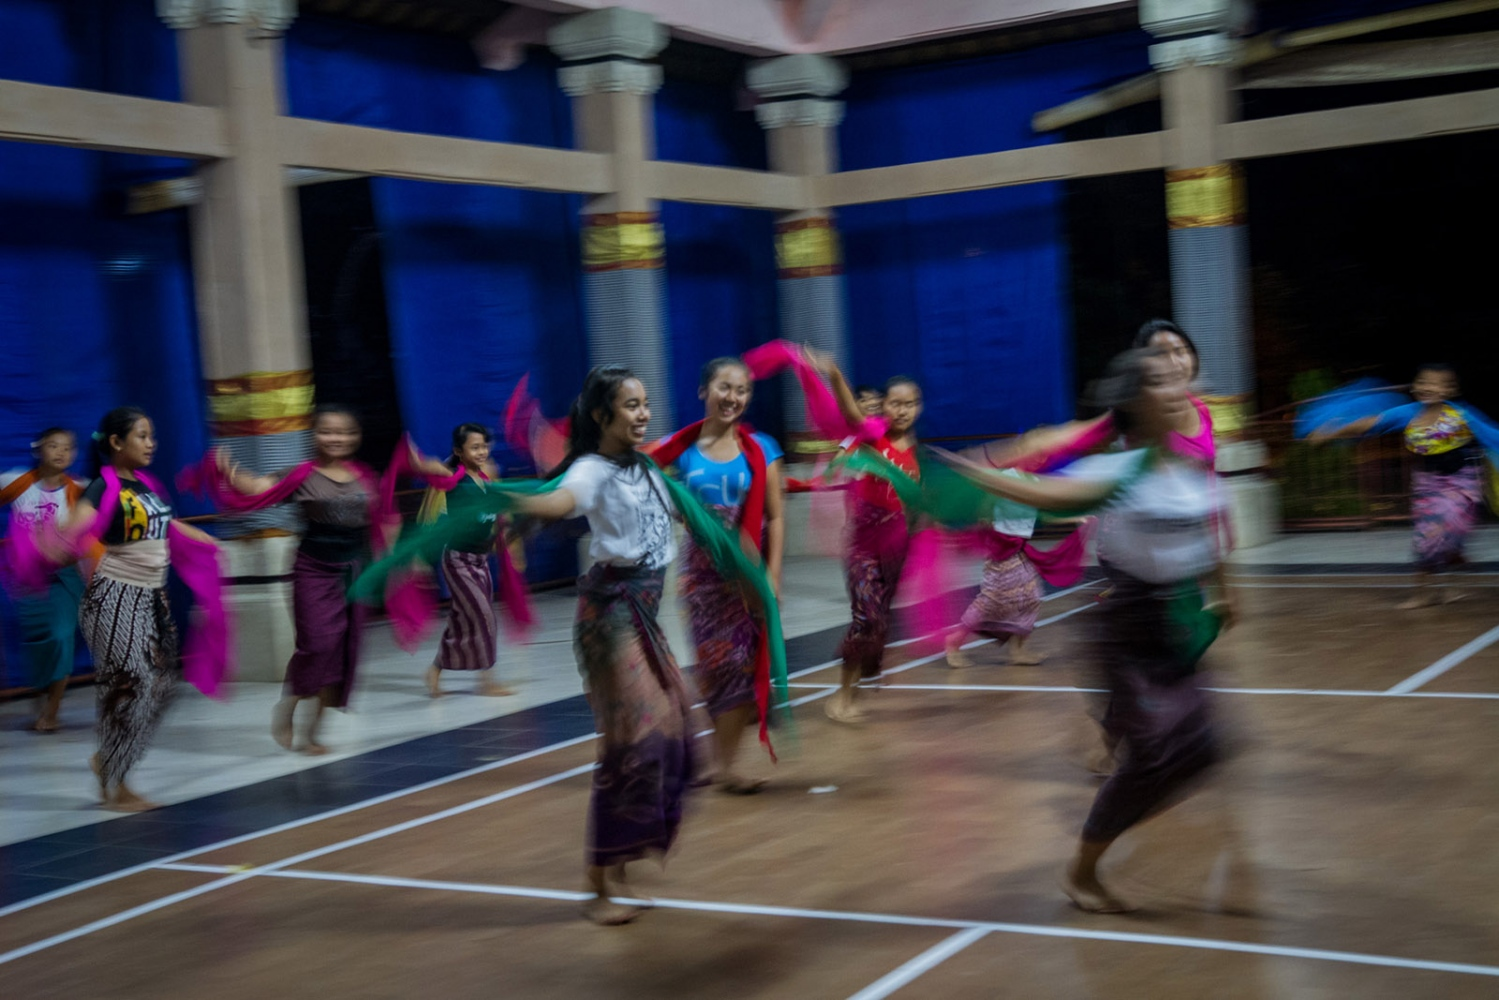 Girls dance to Balinese gamalan music at a community center in Ubud, Bali, Indonesia, July 2015.